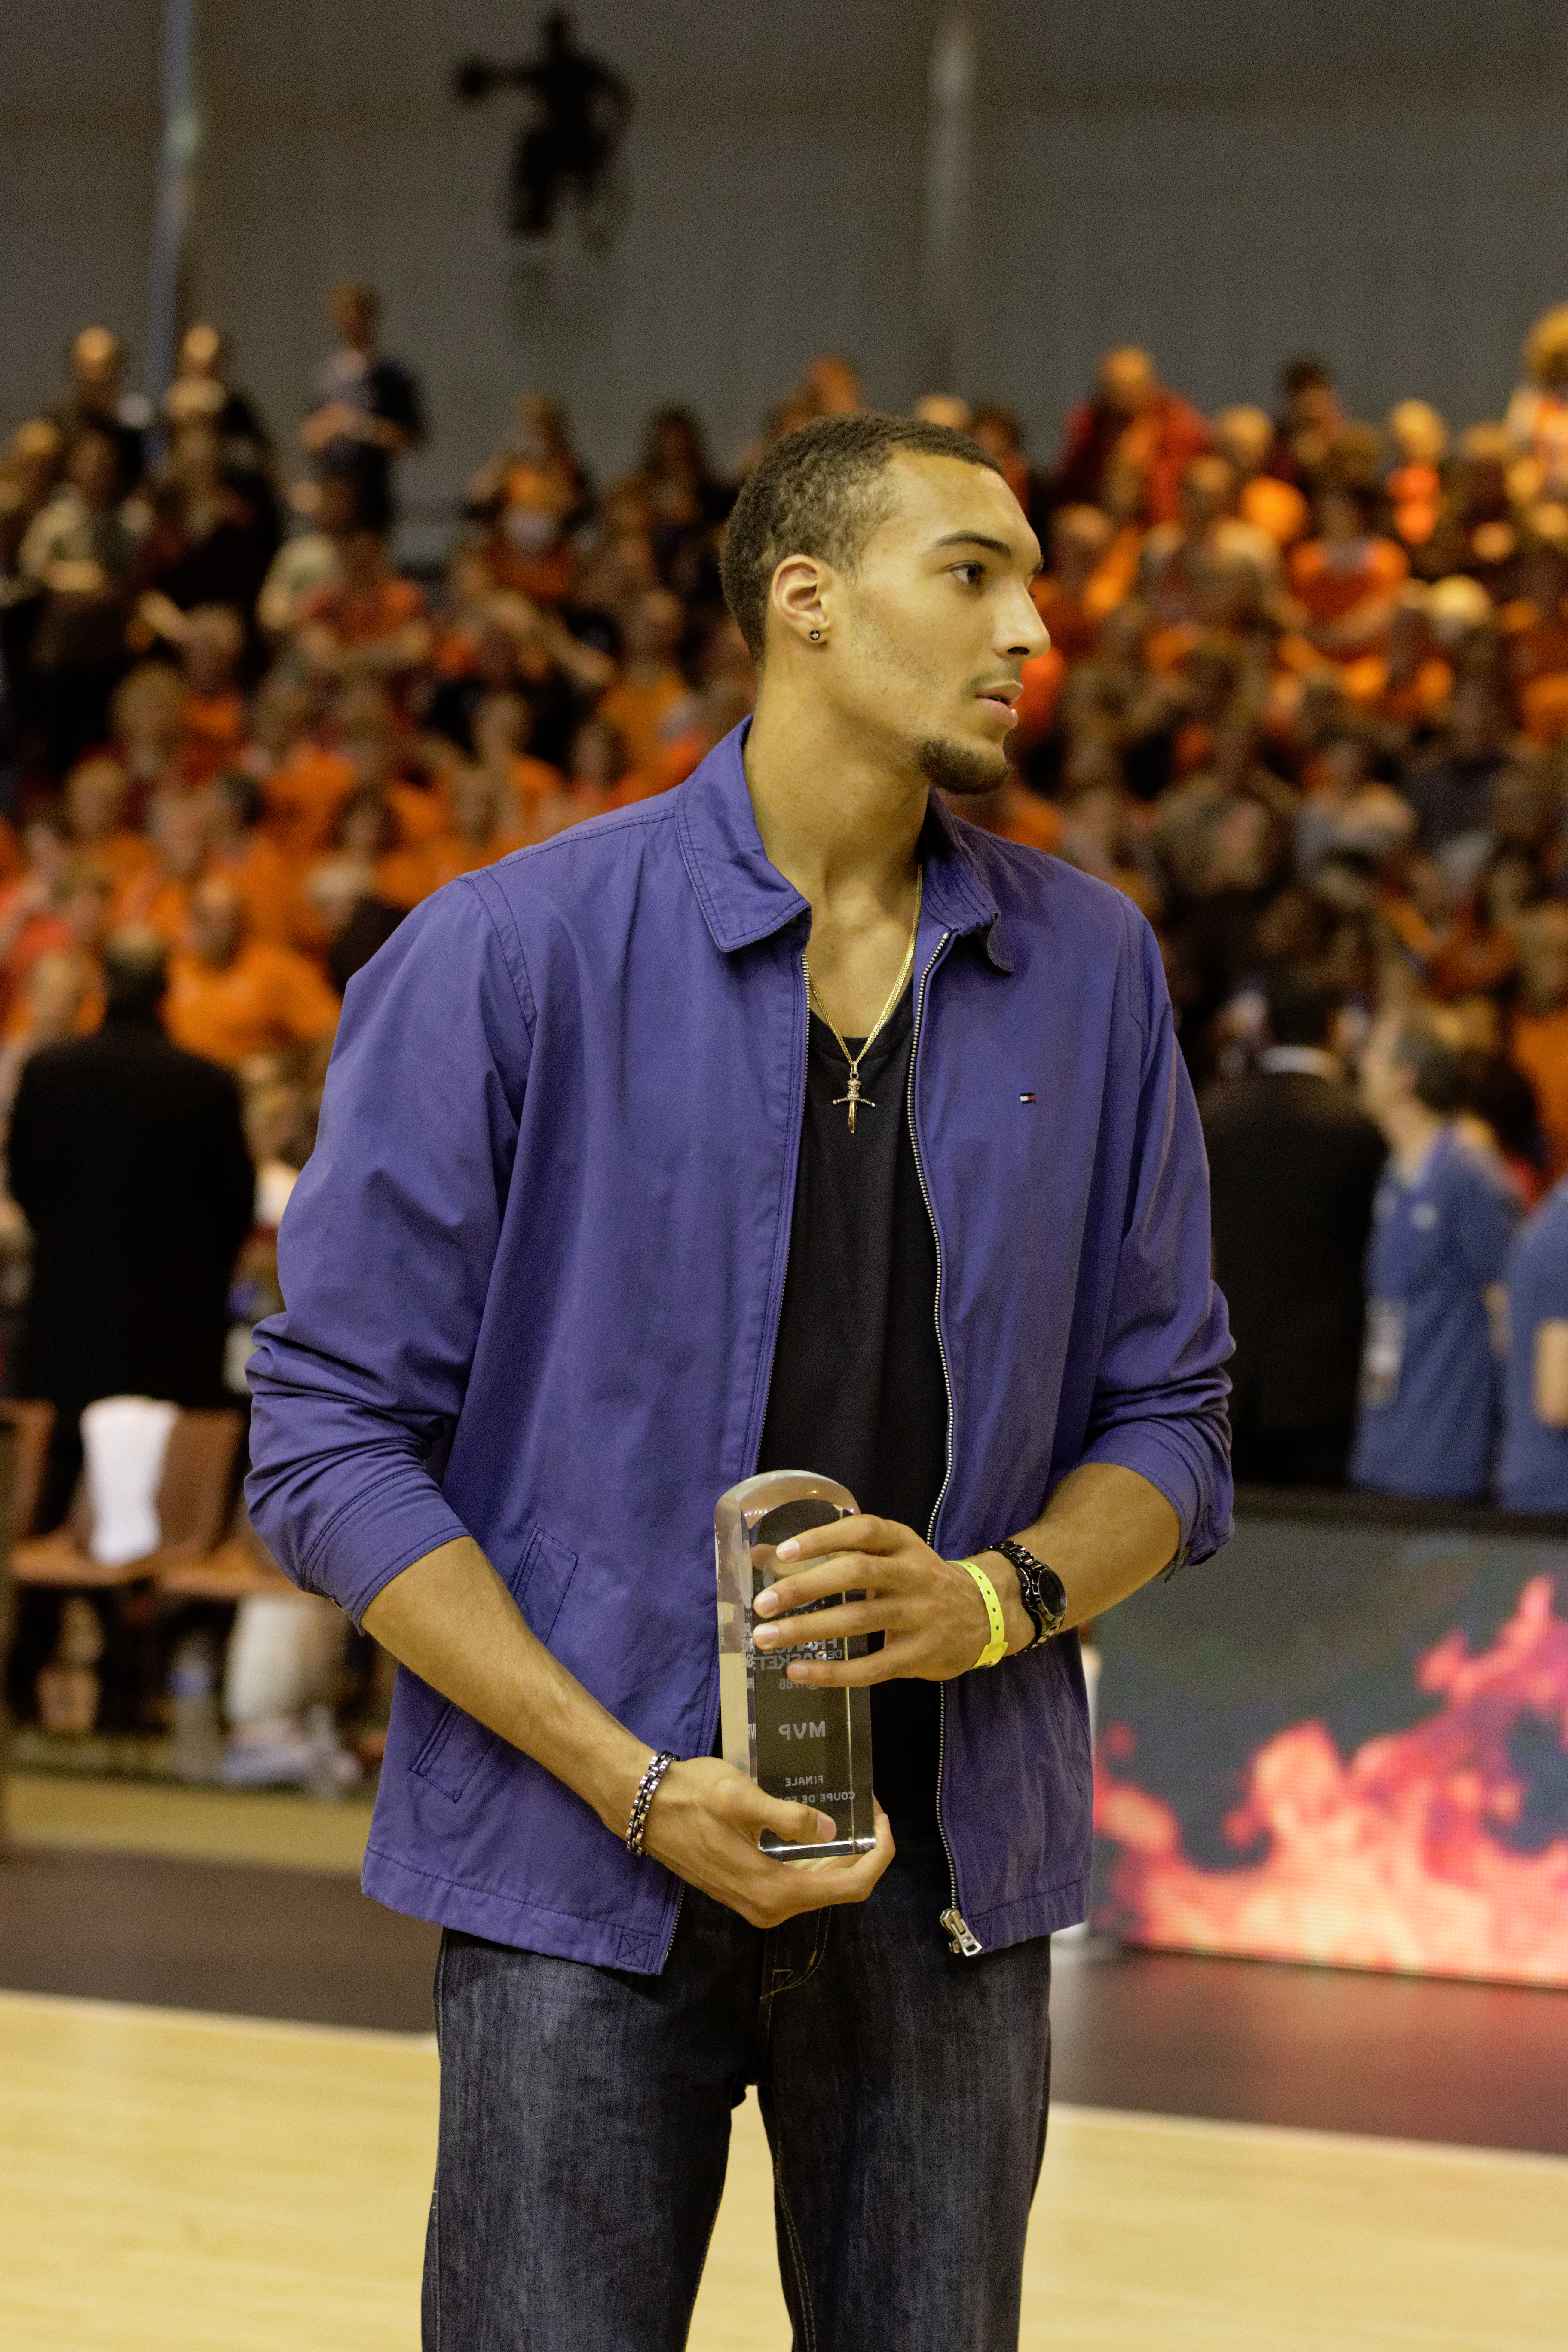 The 26-year old son of father (?) and mother(?) Rudy Gobert in 2018 photo. Rudy Gobert earned a  million dollar salary - leaving the net worth at 2.2 million in 2018